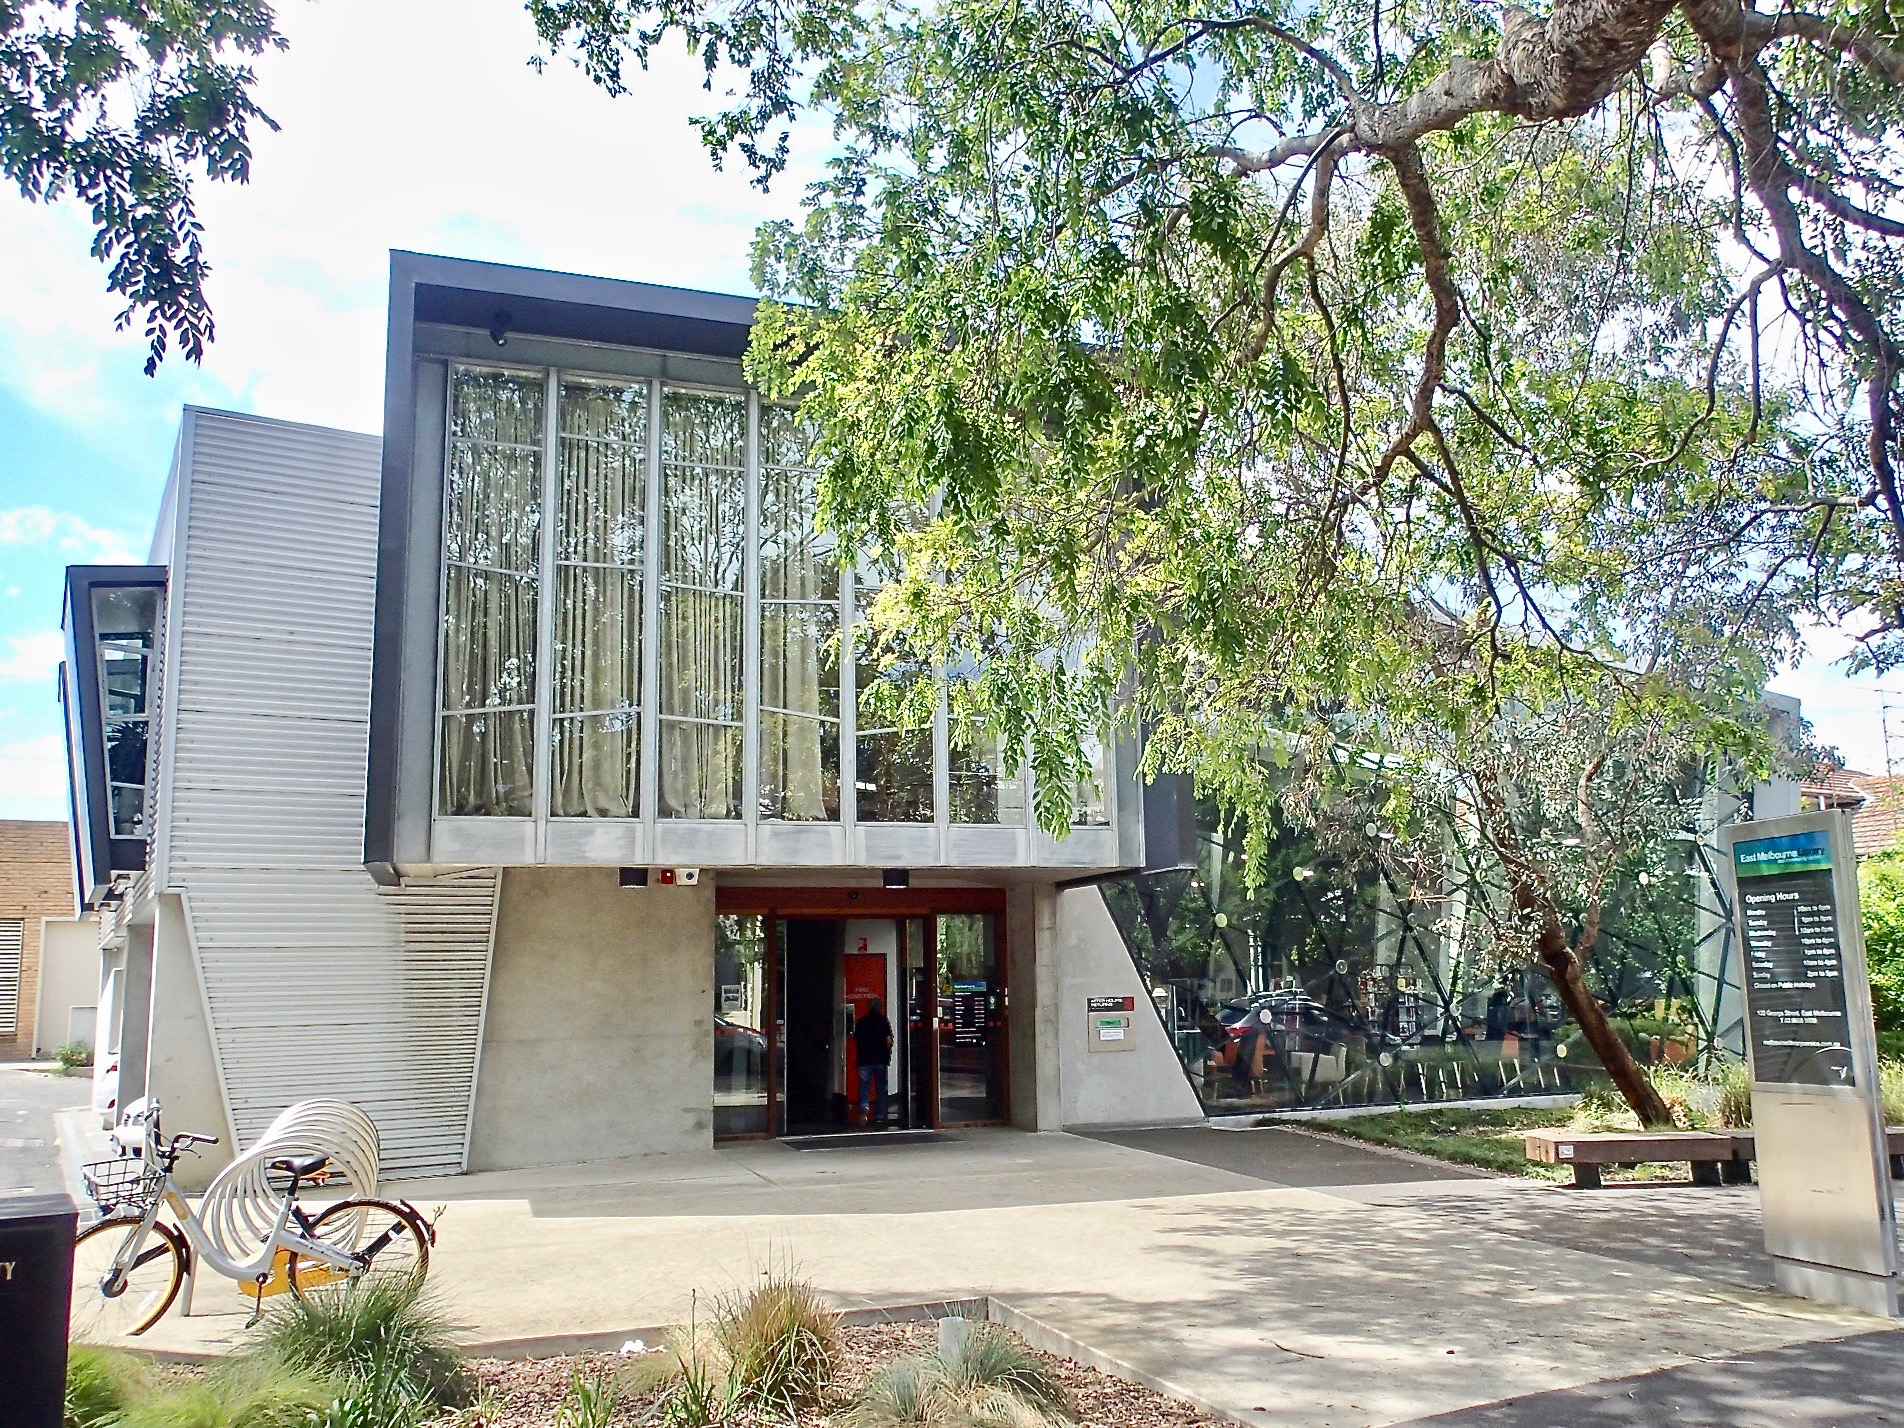 East Melbourne Library2